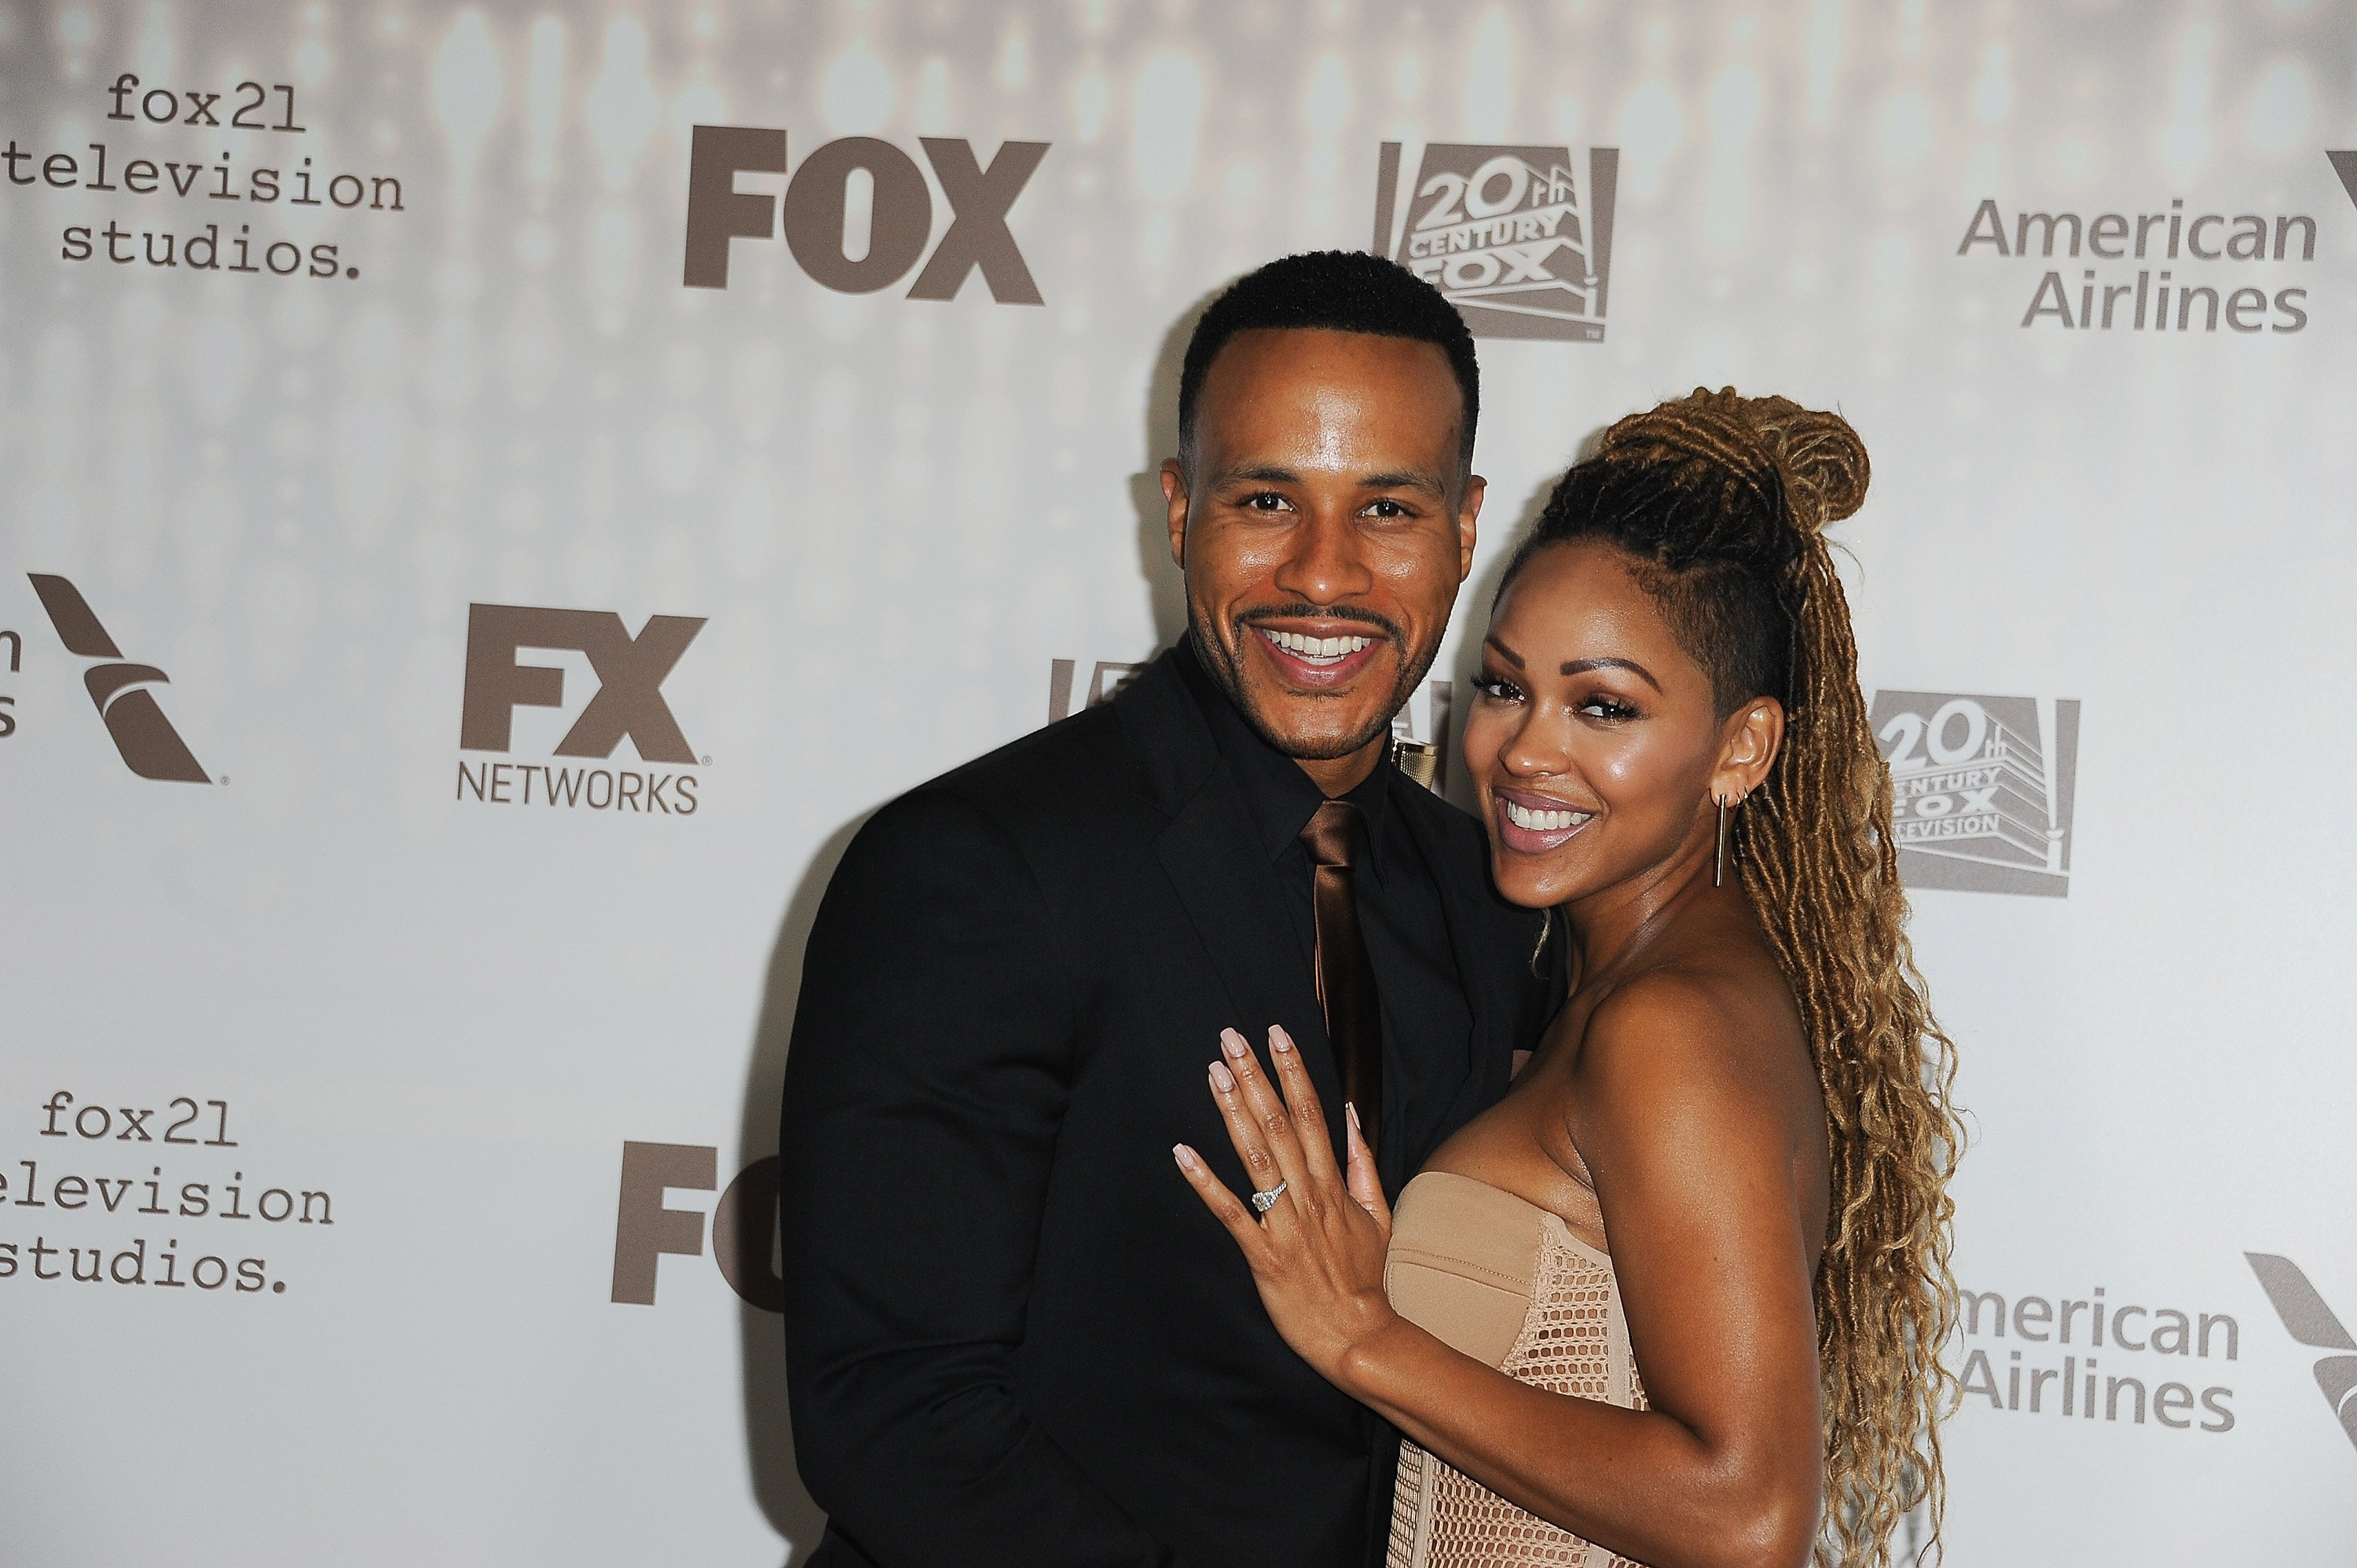 DeVon Franklin and Meagan Good at the 2017 Golden Globe Awards after-party on January 8, 2017 | Photo: Getty Images